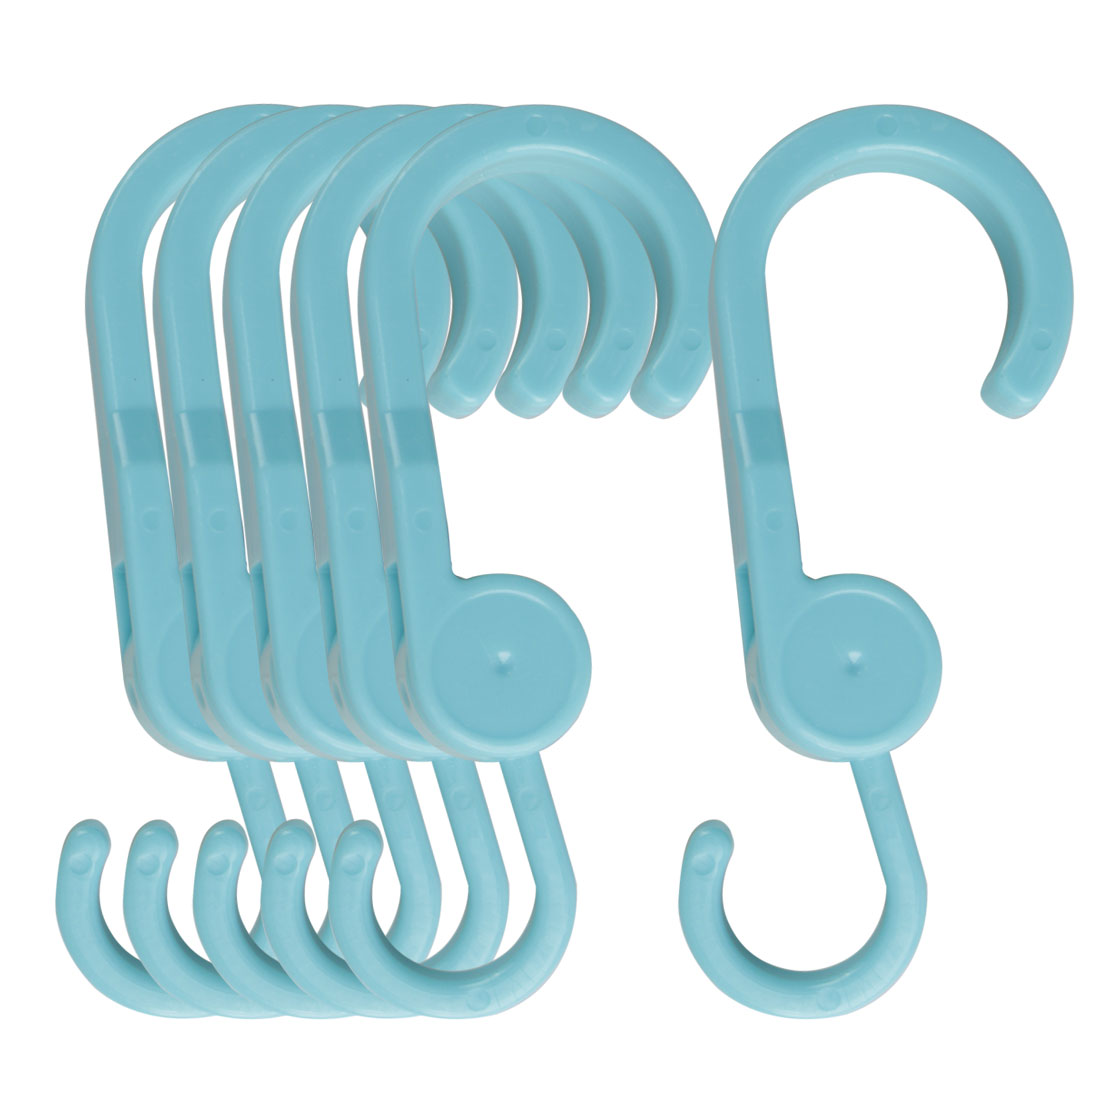 6pcs S Hook Rack ABS Plastic for Kitchenware Pot Utensils Coat Towel Holder Blue